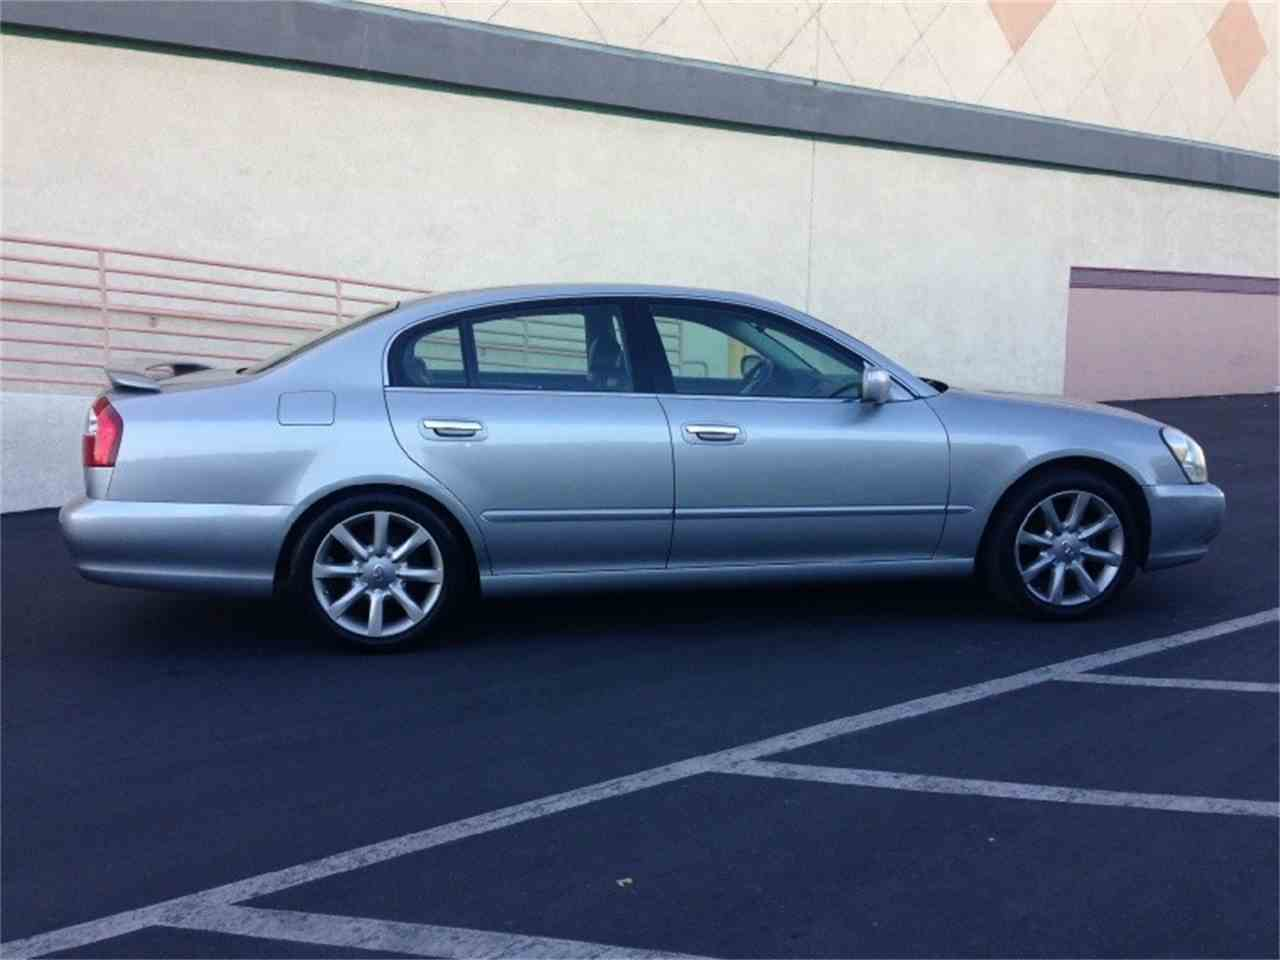 Large Picture of 2002 Infiniti Q45 located in Ontario California - $2,999.00 Offered by WDC Global Exports - JLHS